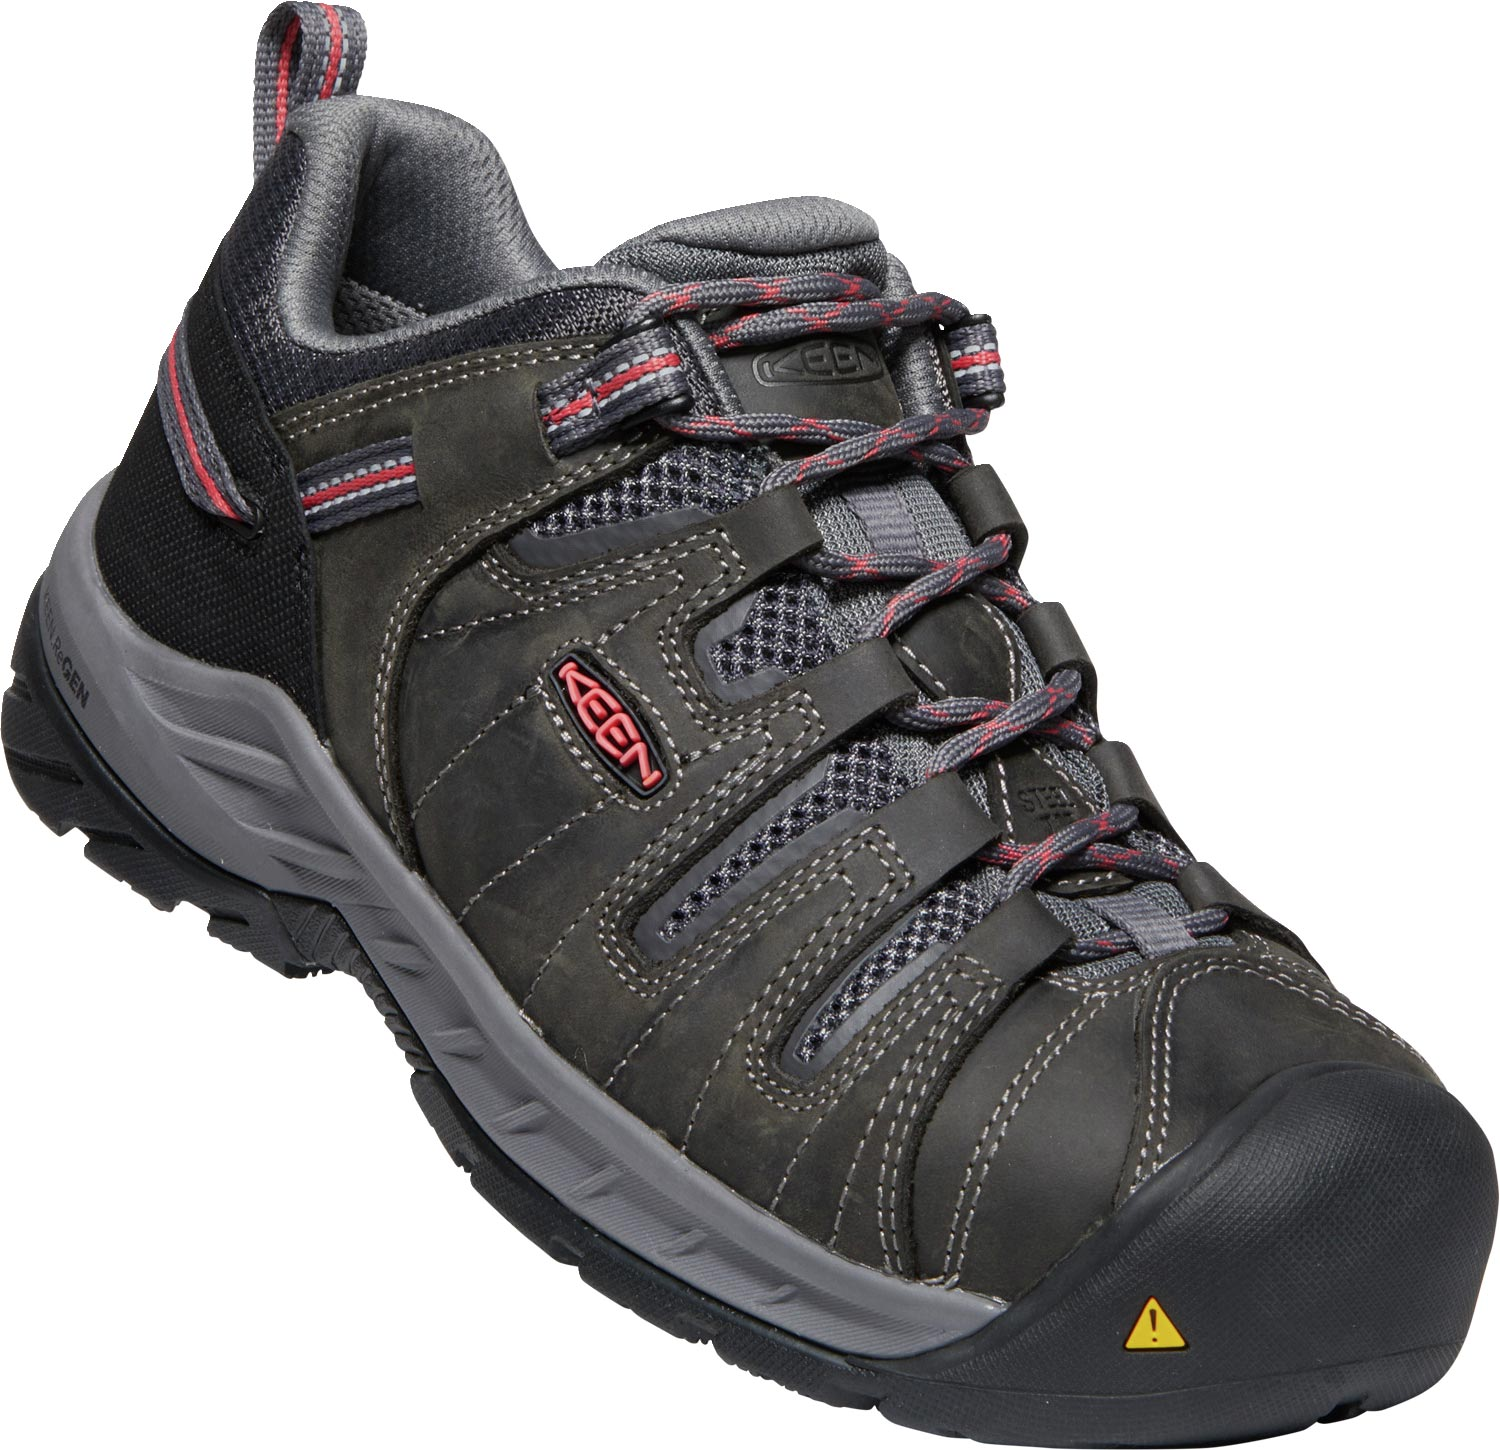 Keen 1023232 Flint II Womens Low Safety Toe